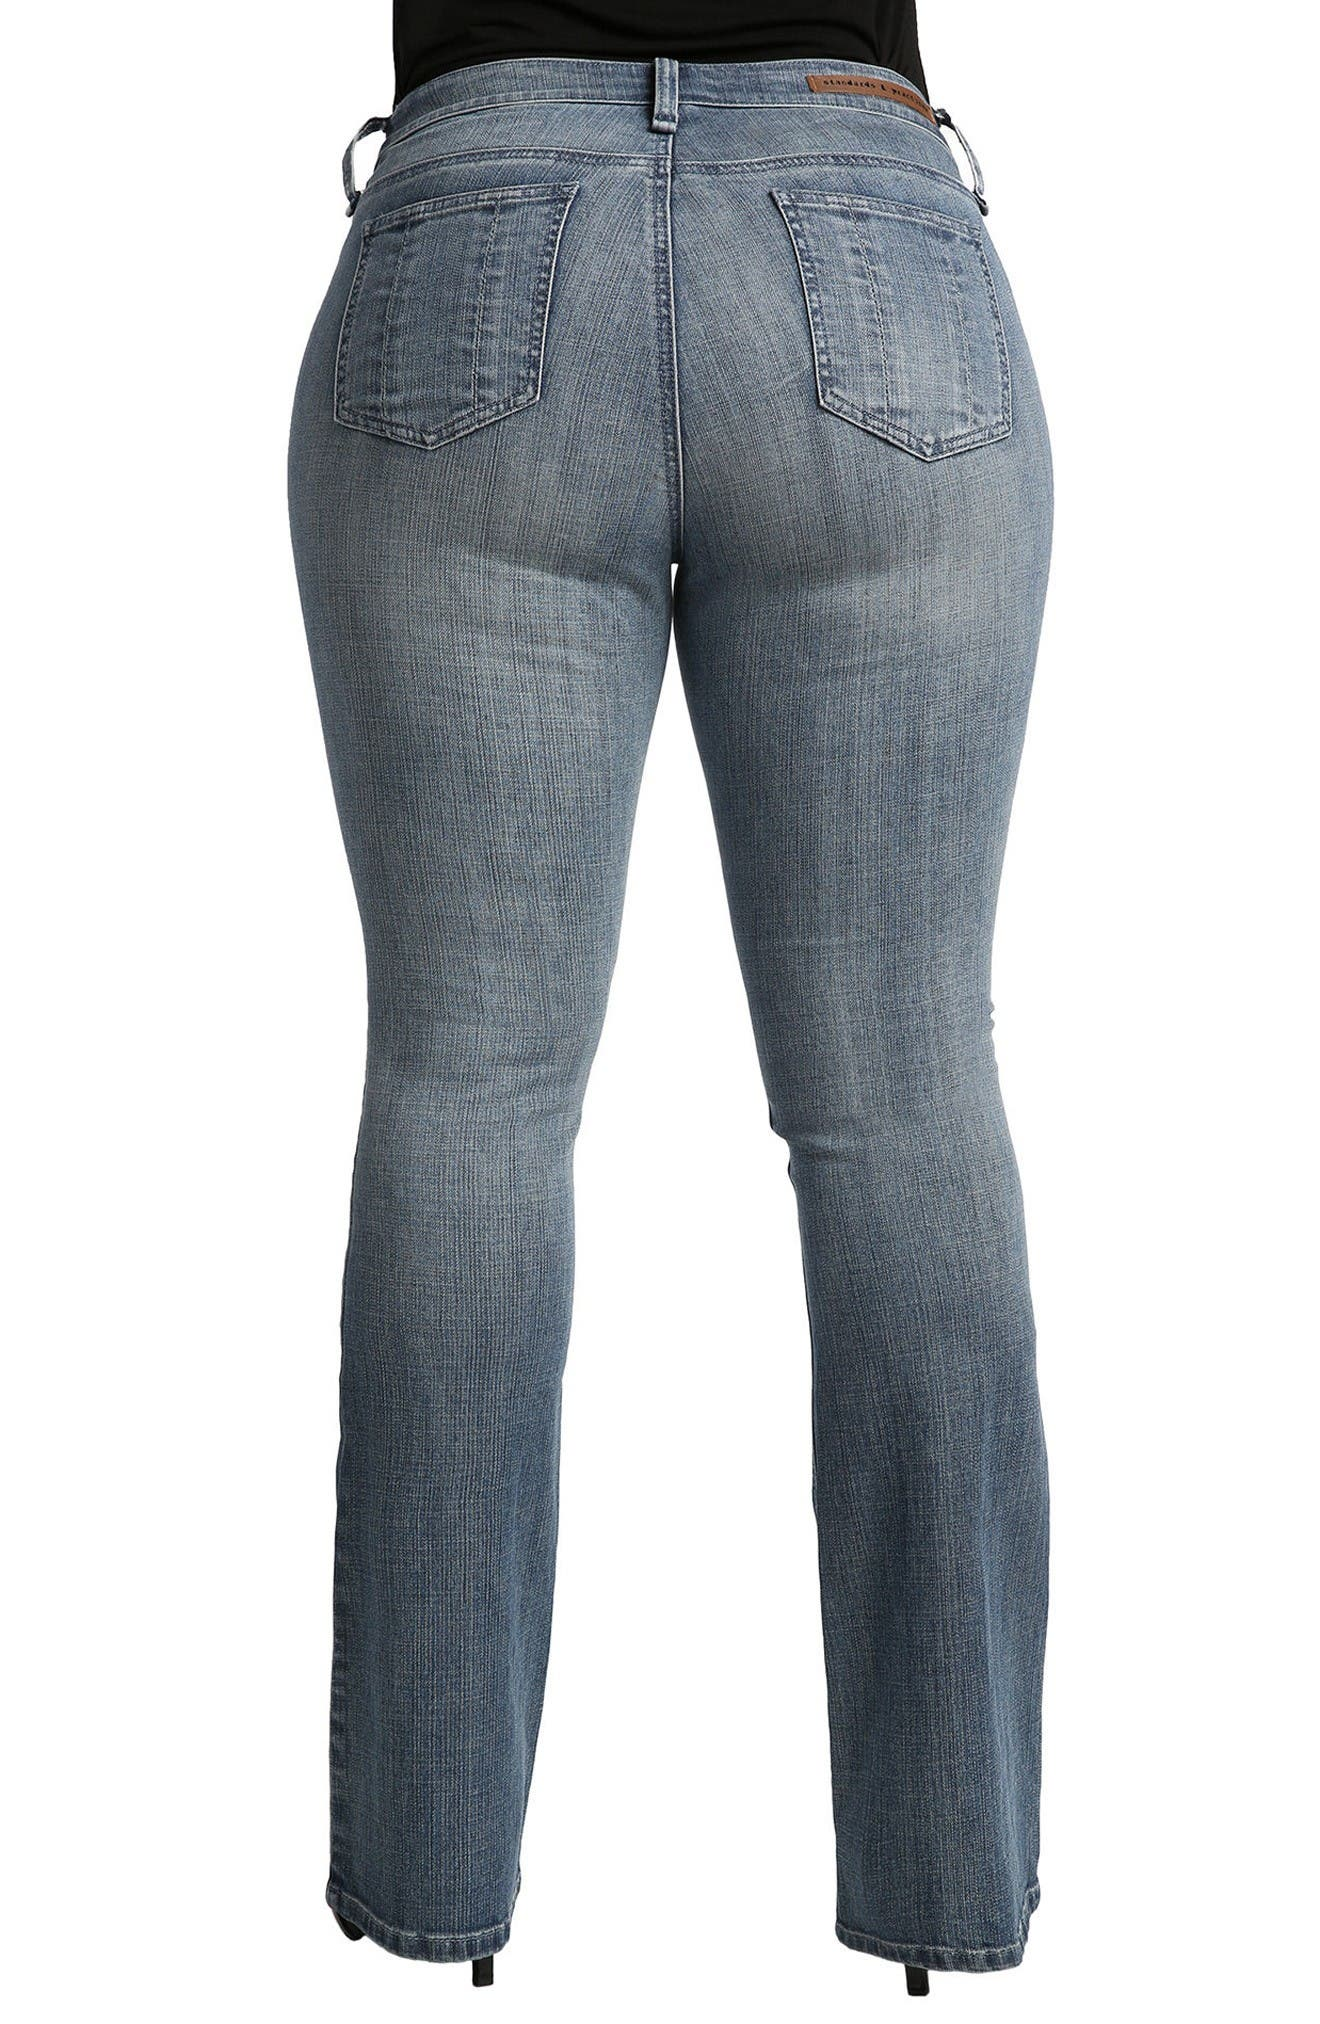 Alternate Image 2  - Standards & Practices Clarice Uptown Mid Rise Bootcut Jeans (Plus Size)